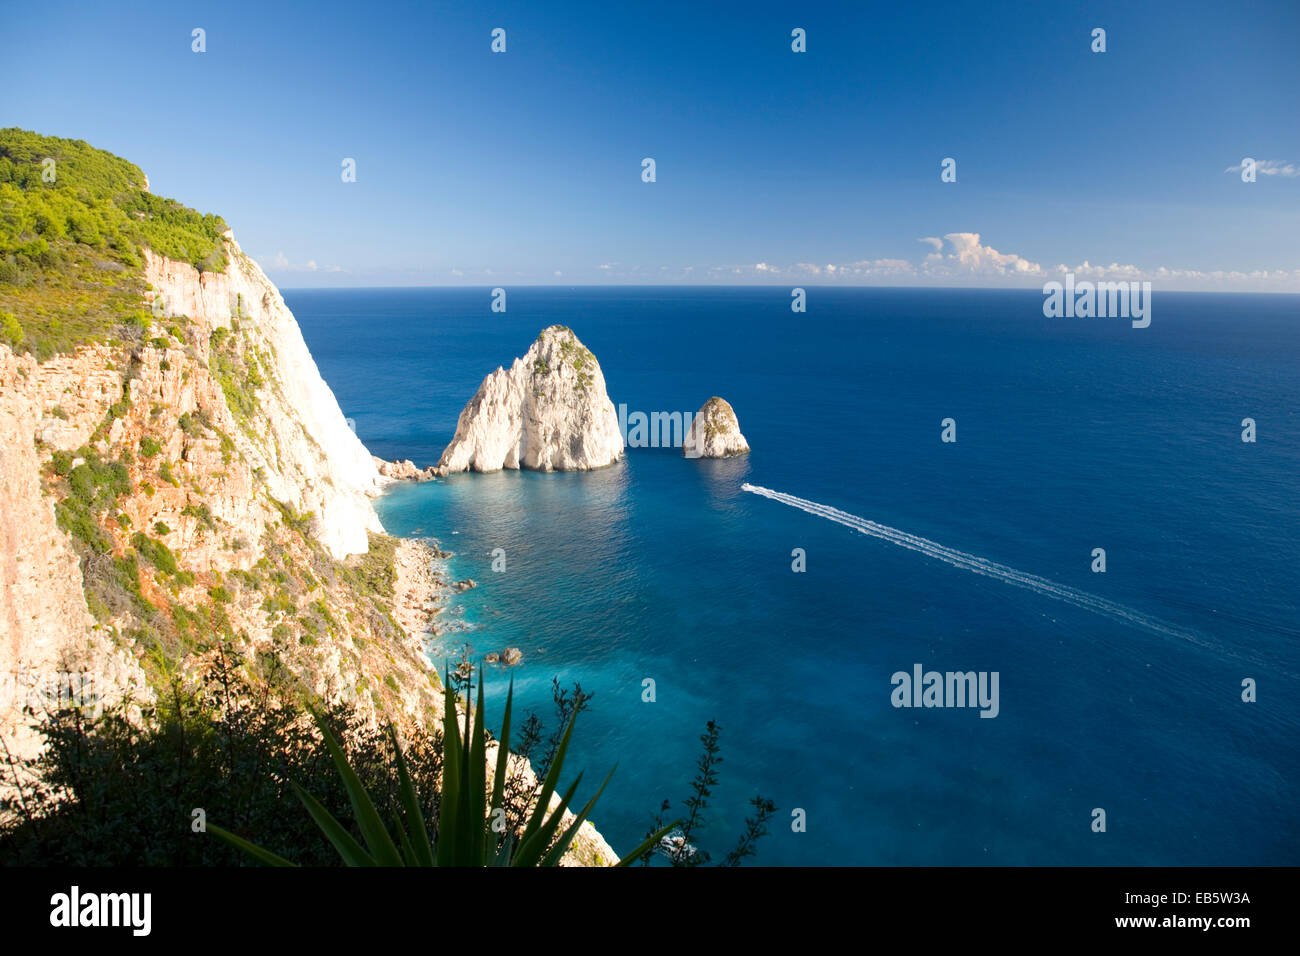 Keri, Zakynthos, Ionian Islands, Greece. View to the Myzithres Rocks from clifftop at Cape Keri, boat speeding across - Stock Image